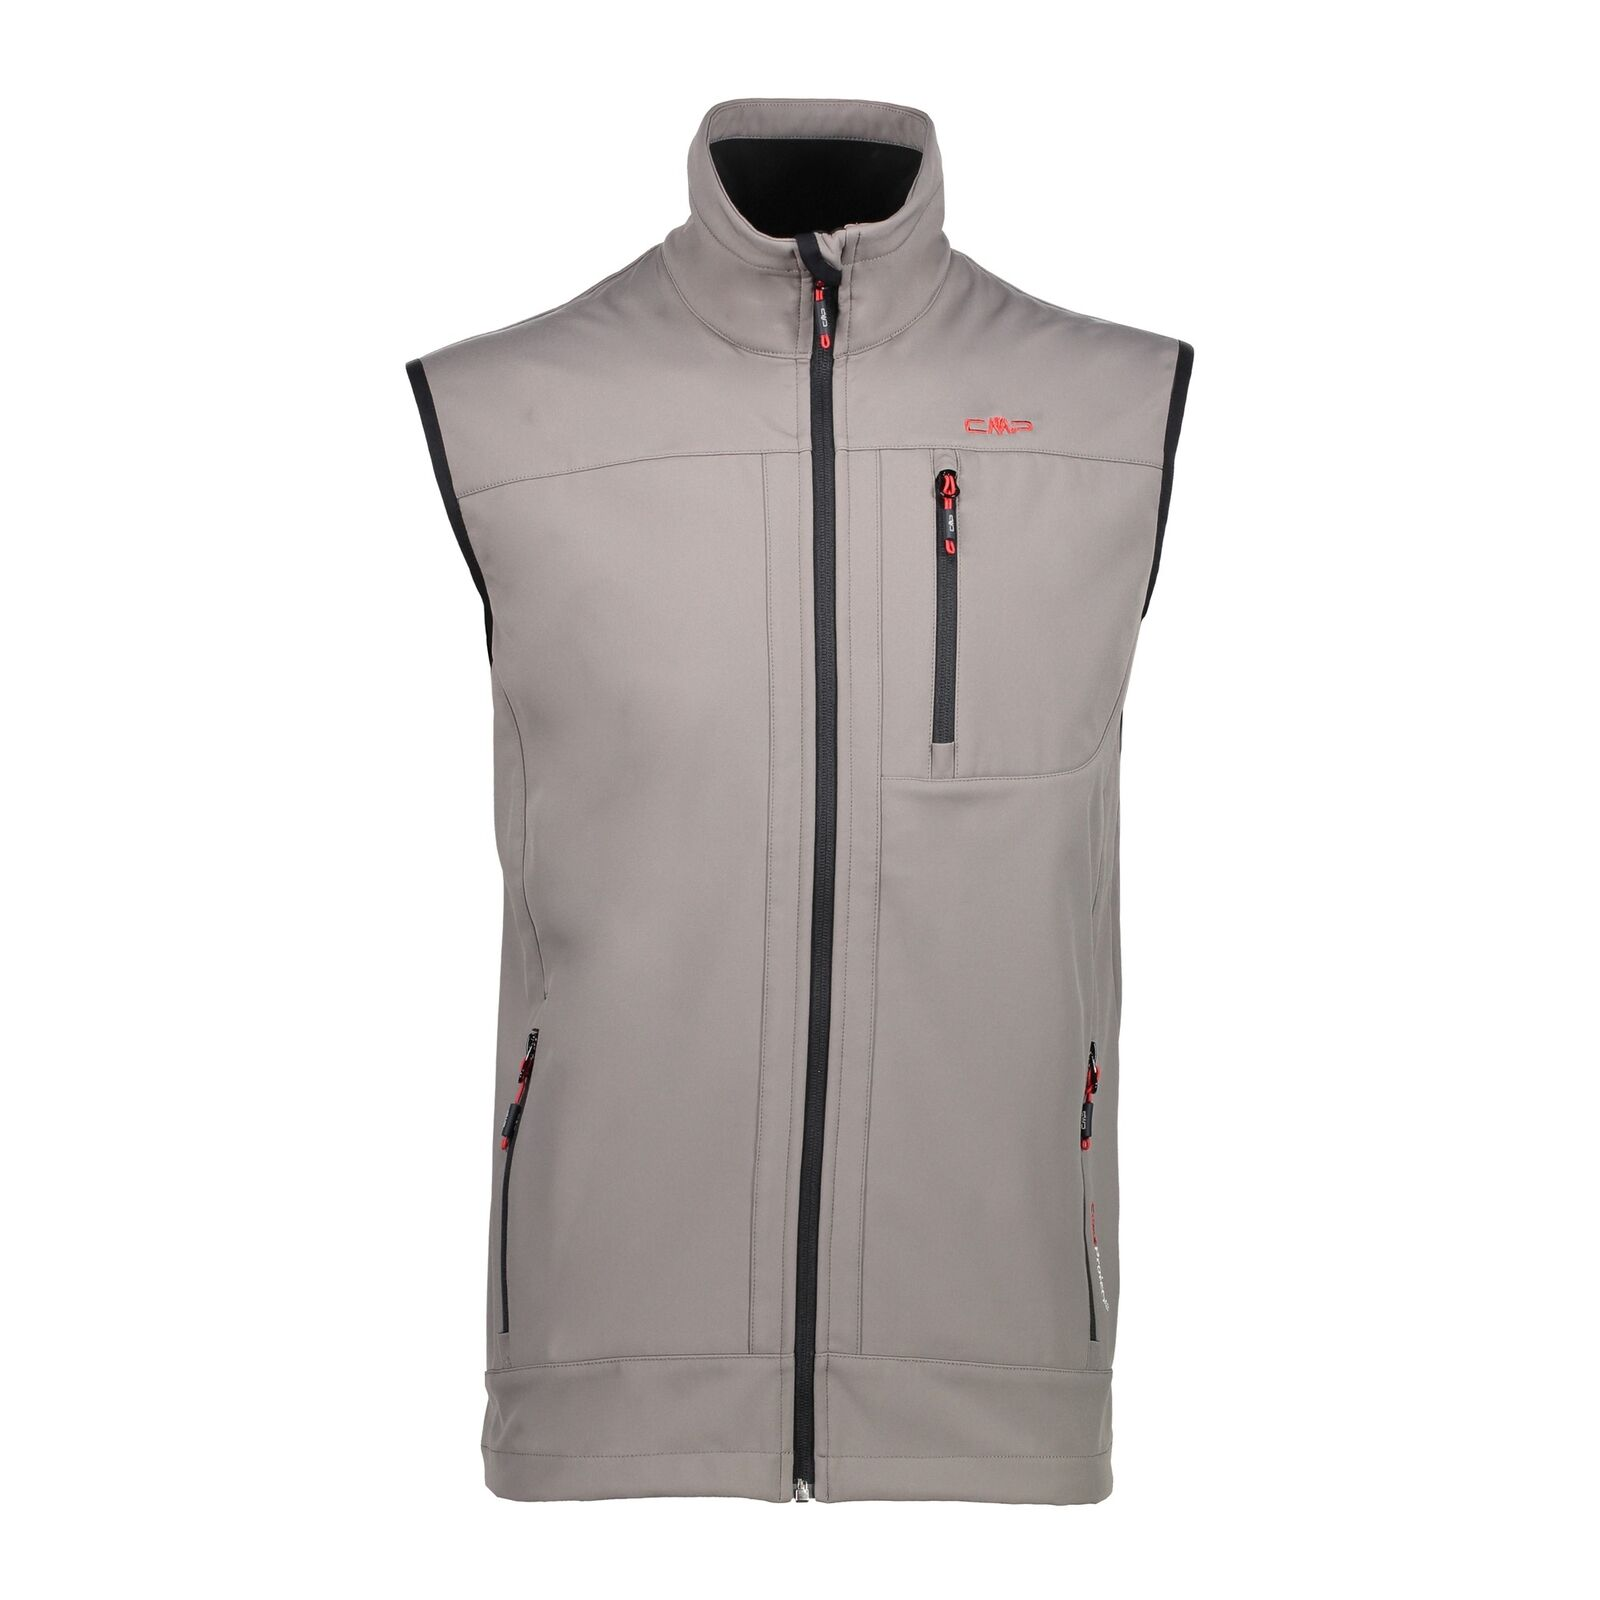 CMP Softshell Vest Waistcoat Man Vest braun Windproof Waterproof